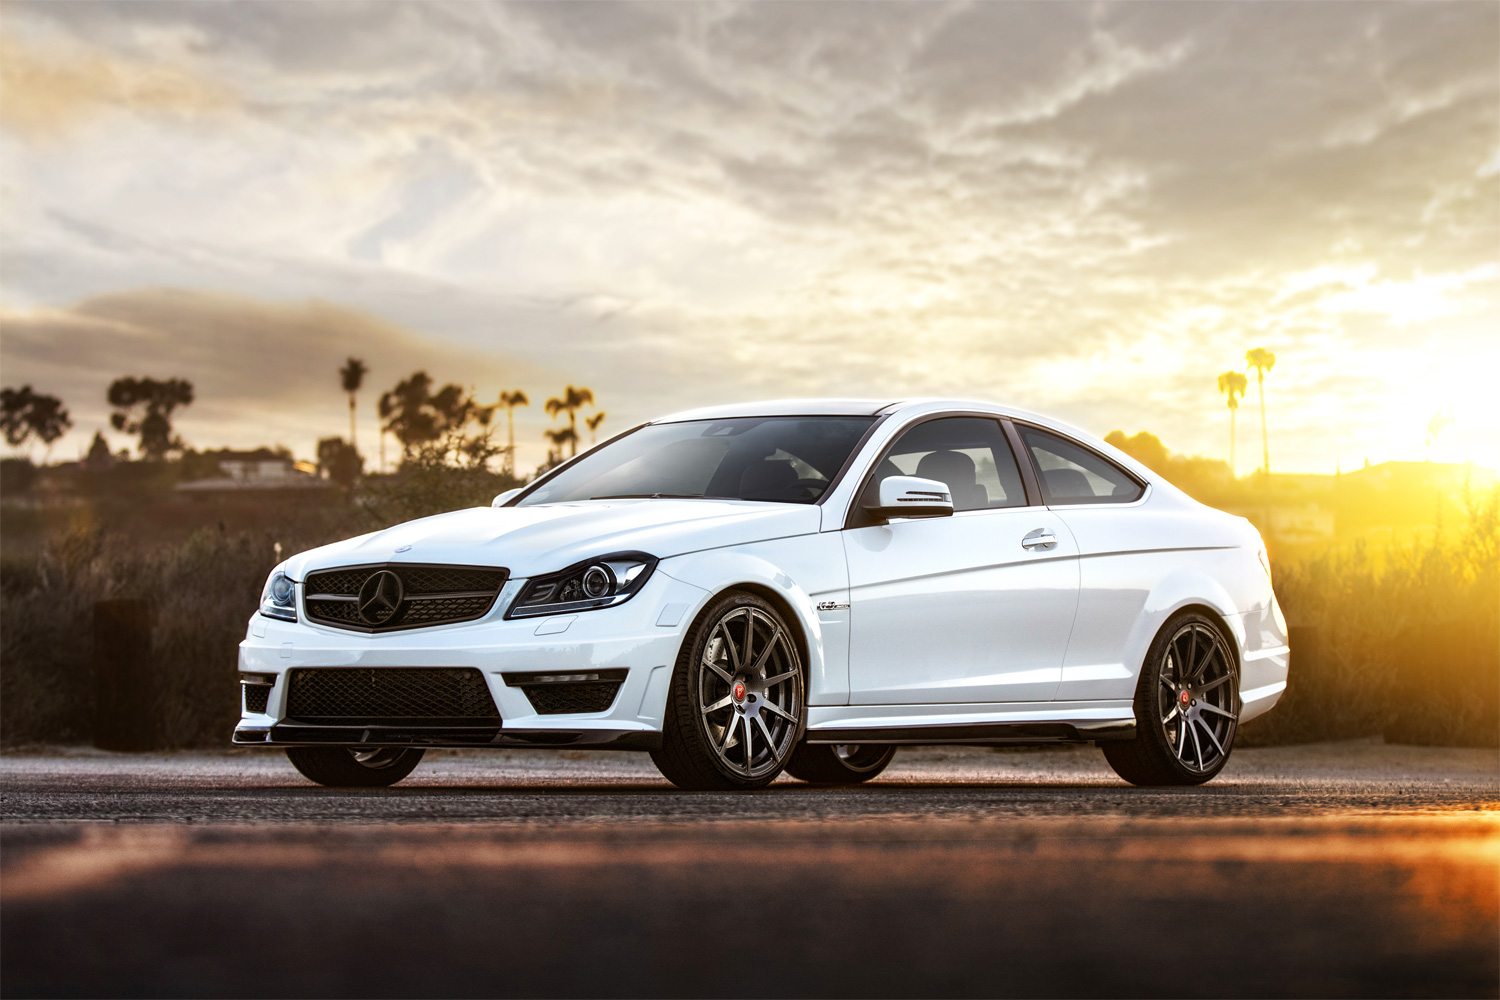 Vorsteiner mercedes benz c63 amg with new outdoor photoshoot - 2012 mercedes c63 amg coupe ...